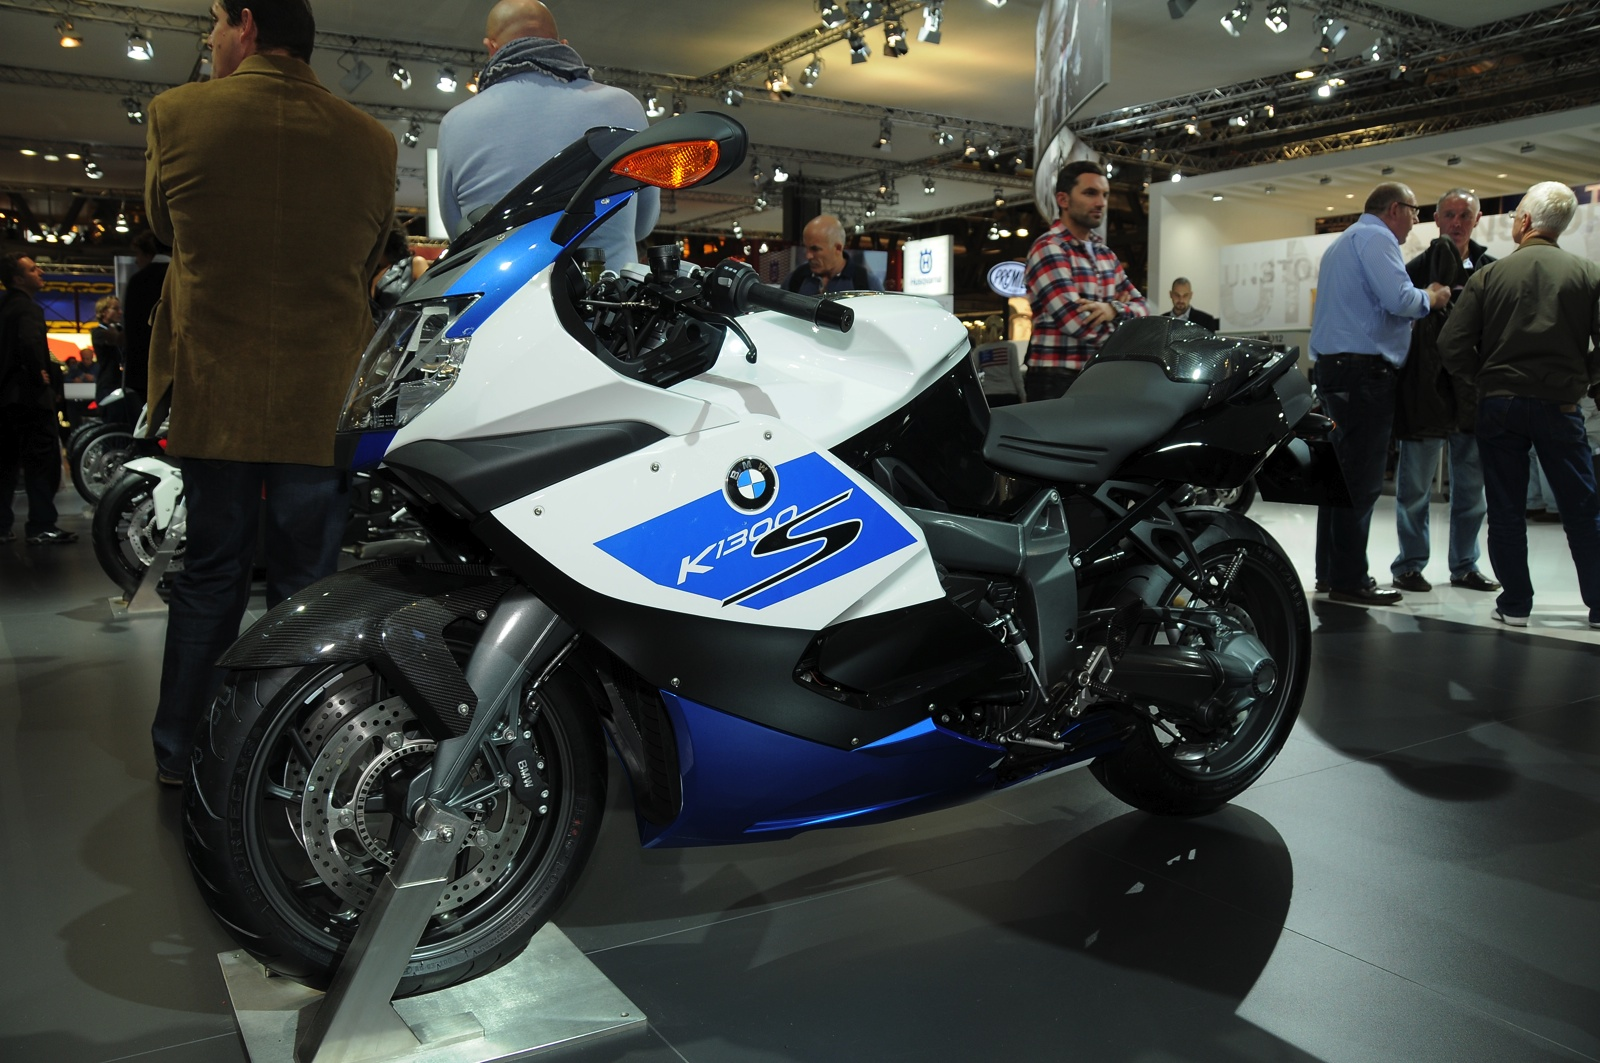 BMW K1300 S HP e K1300 R special edition